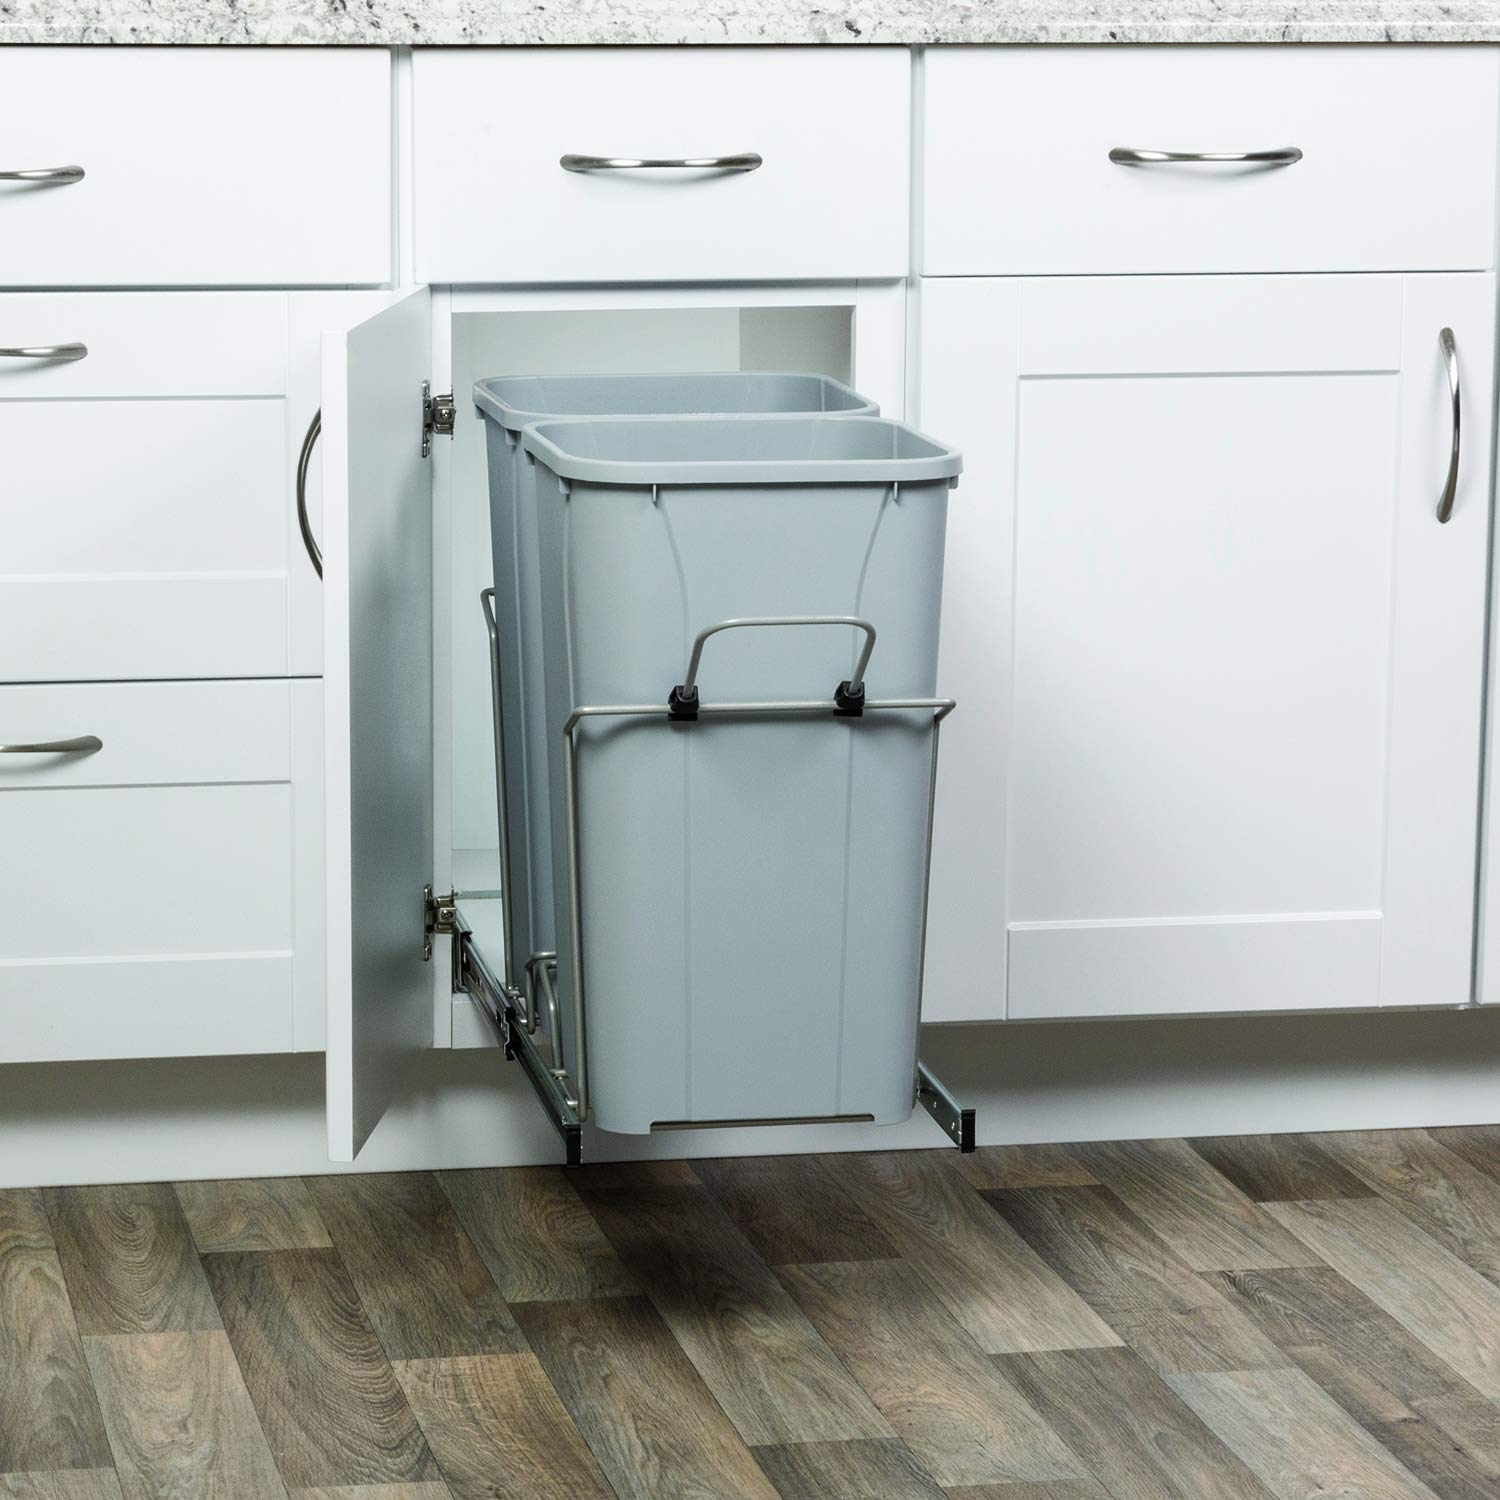 x 11 in in Cabinet Pull Out Soft-Close Trash Can x 22 in Knape /& Vogt 18.75 in